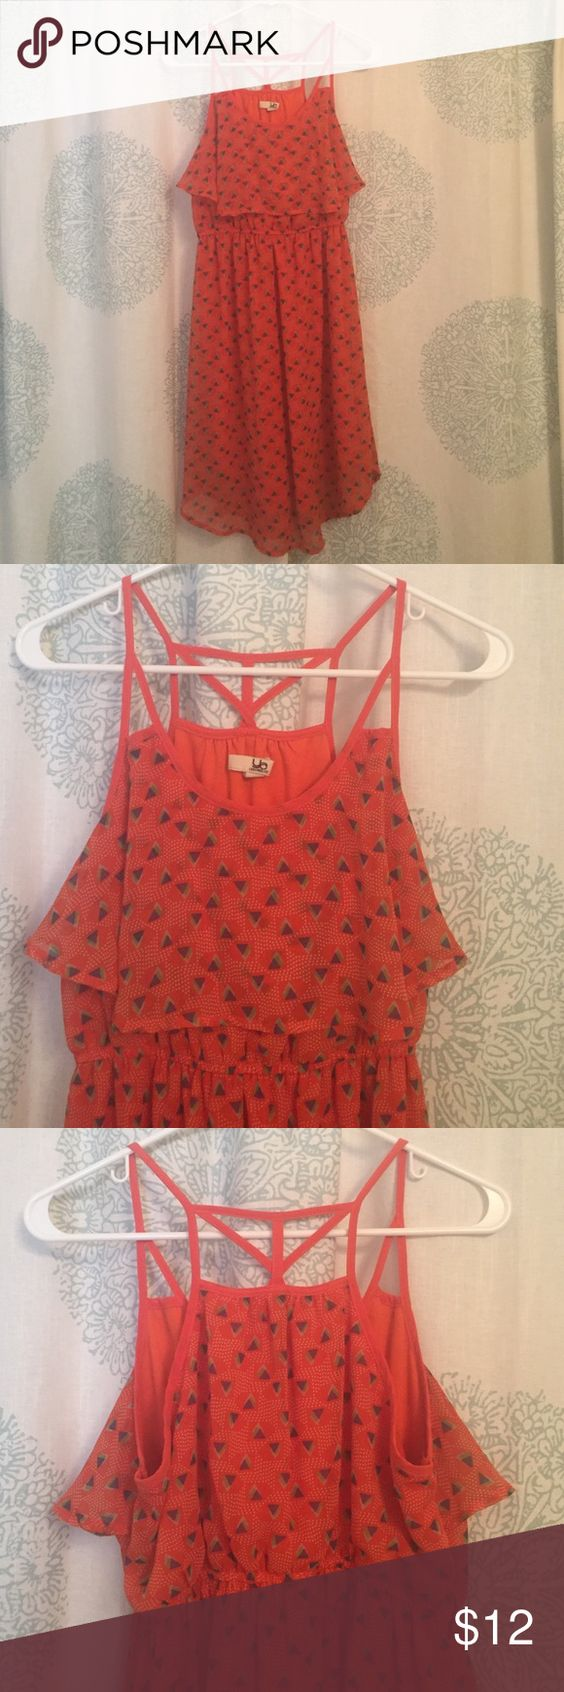 Boutique brand dress This dress is super cute and in great condition! Smoke and pet free home. Has been worn but very lightly. In GREAT condition. Ya Los Angeles Dresses